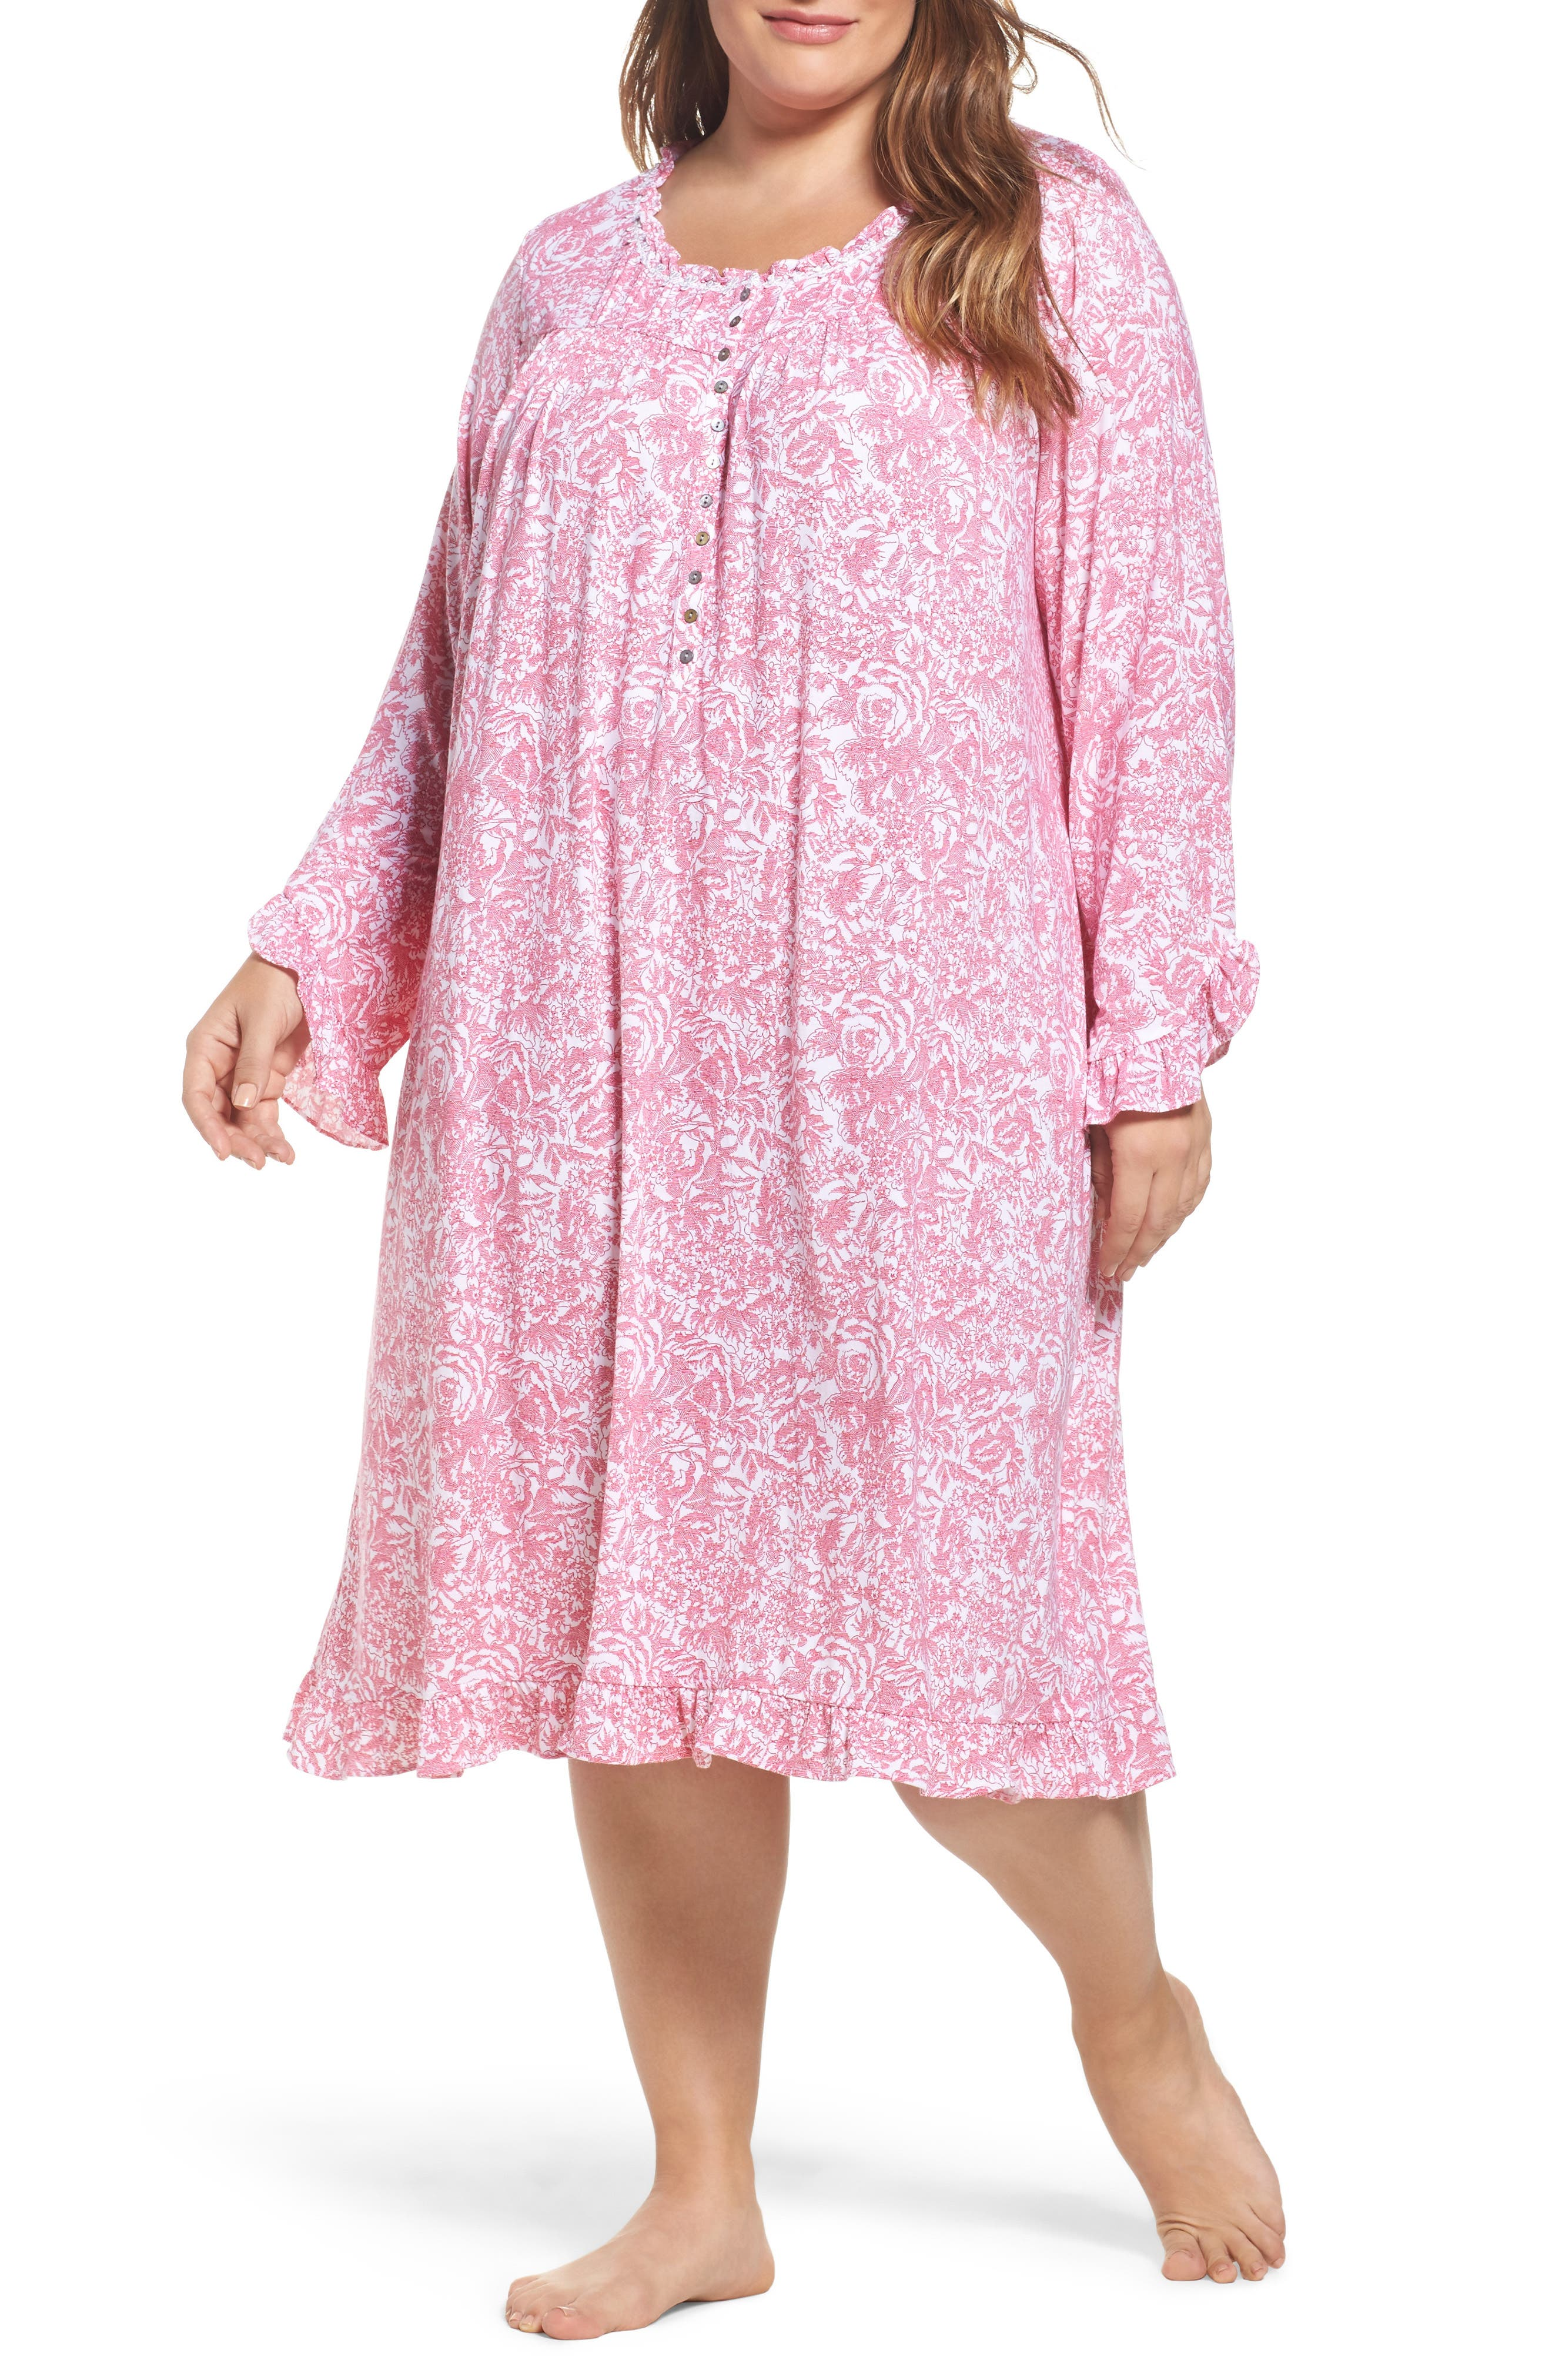 Alternate Image 1 Selected - Eileen West Waltz Stretch Modal Nightgown (Plus Size)